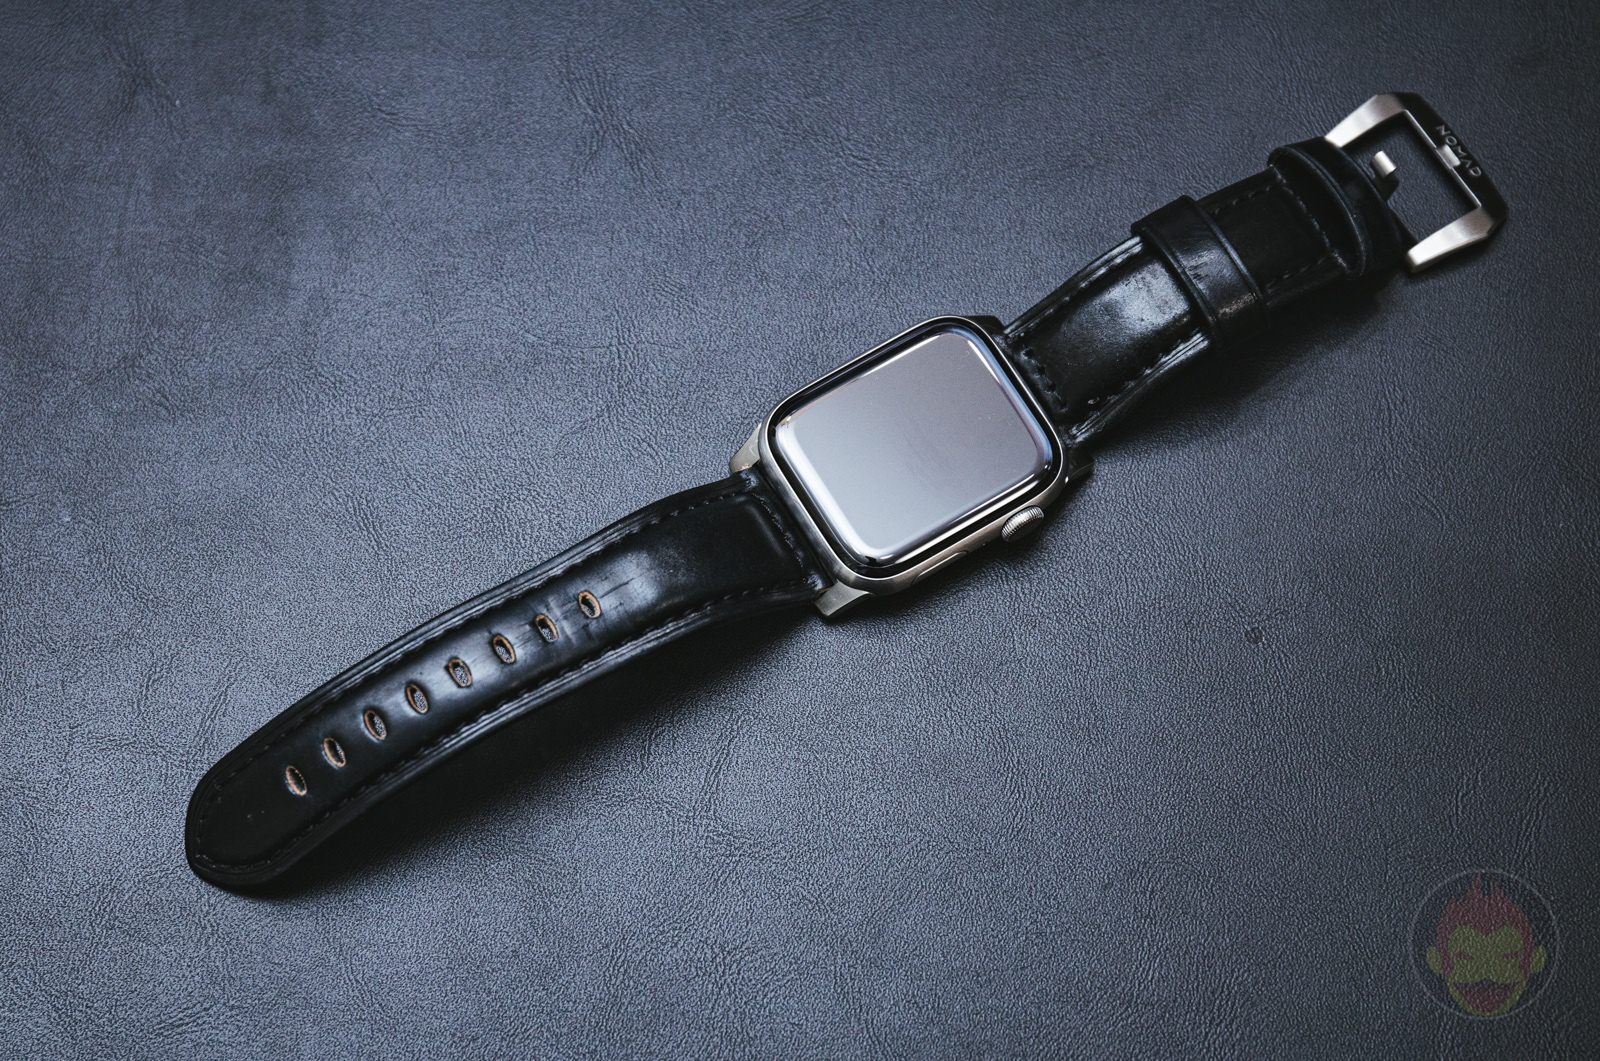 Apple-Watch-NOMAD-Shell-Cordovan-Strap-Review-14.jpg